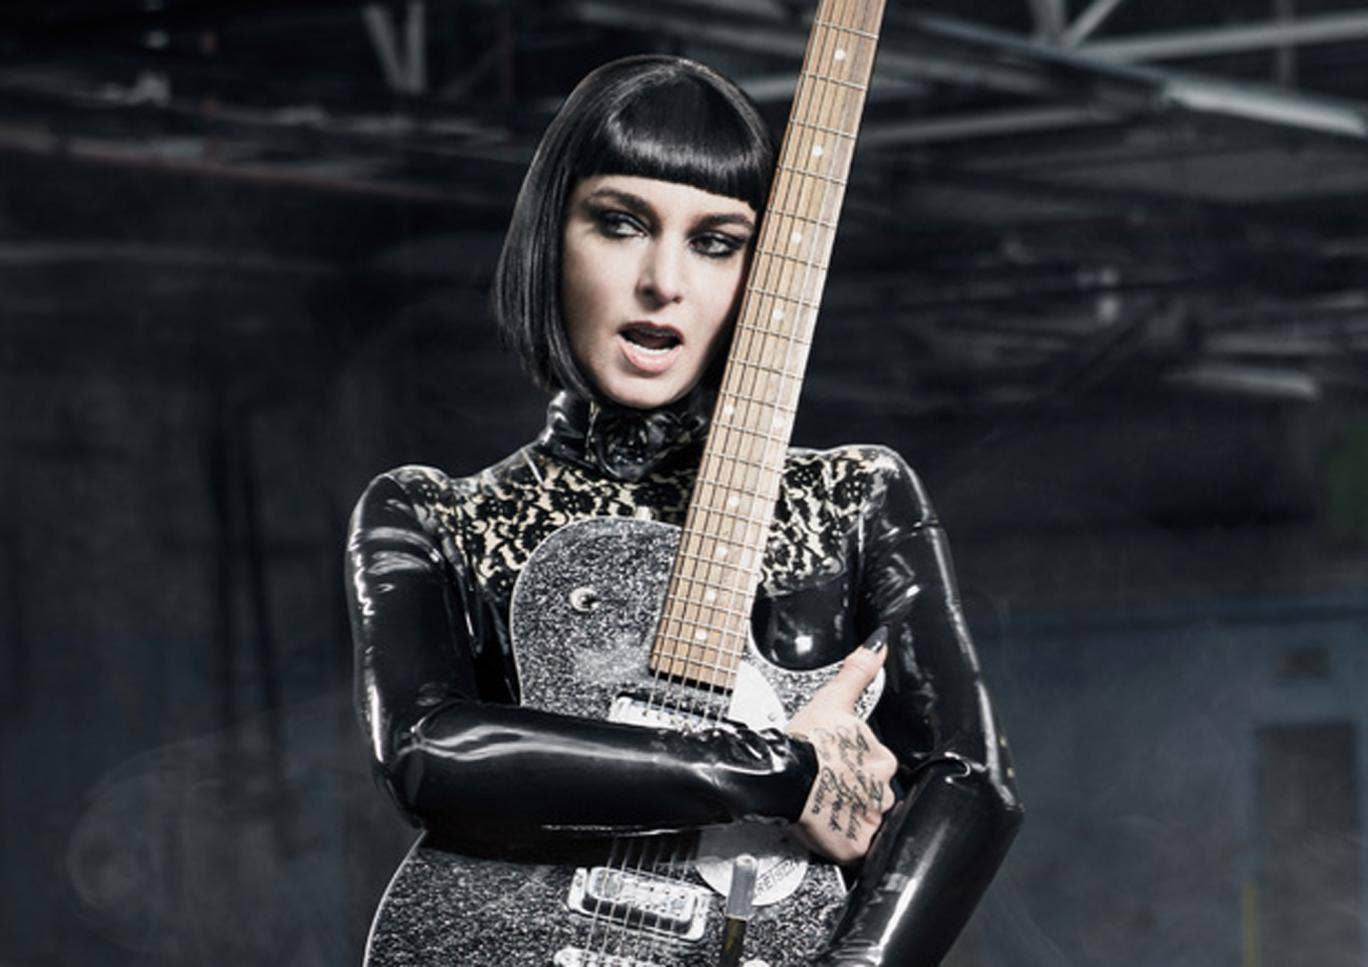 Sinead O'Connor on the cover of her new album I'm Not Bossy, I'm the Boss